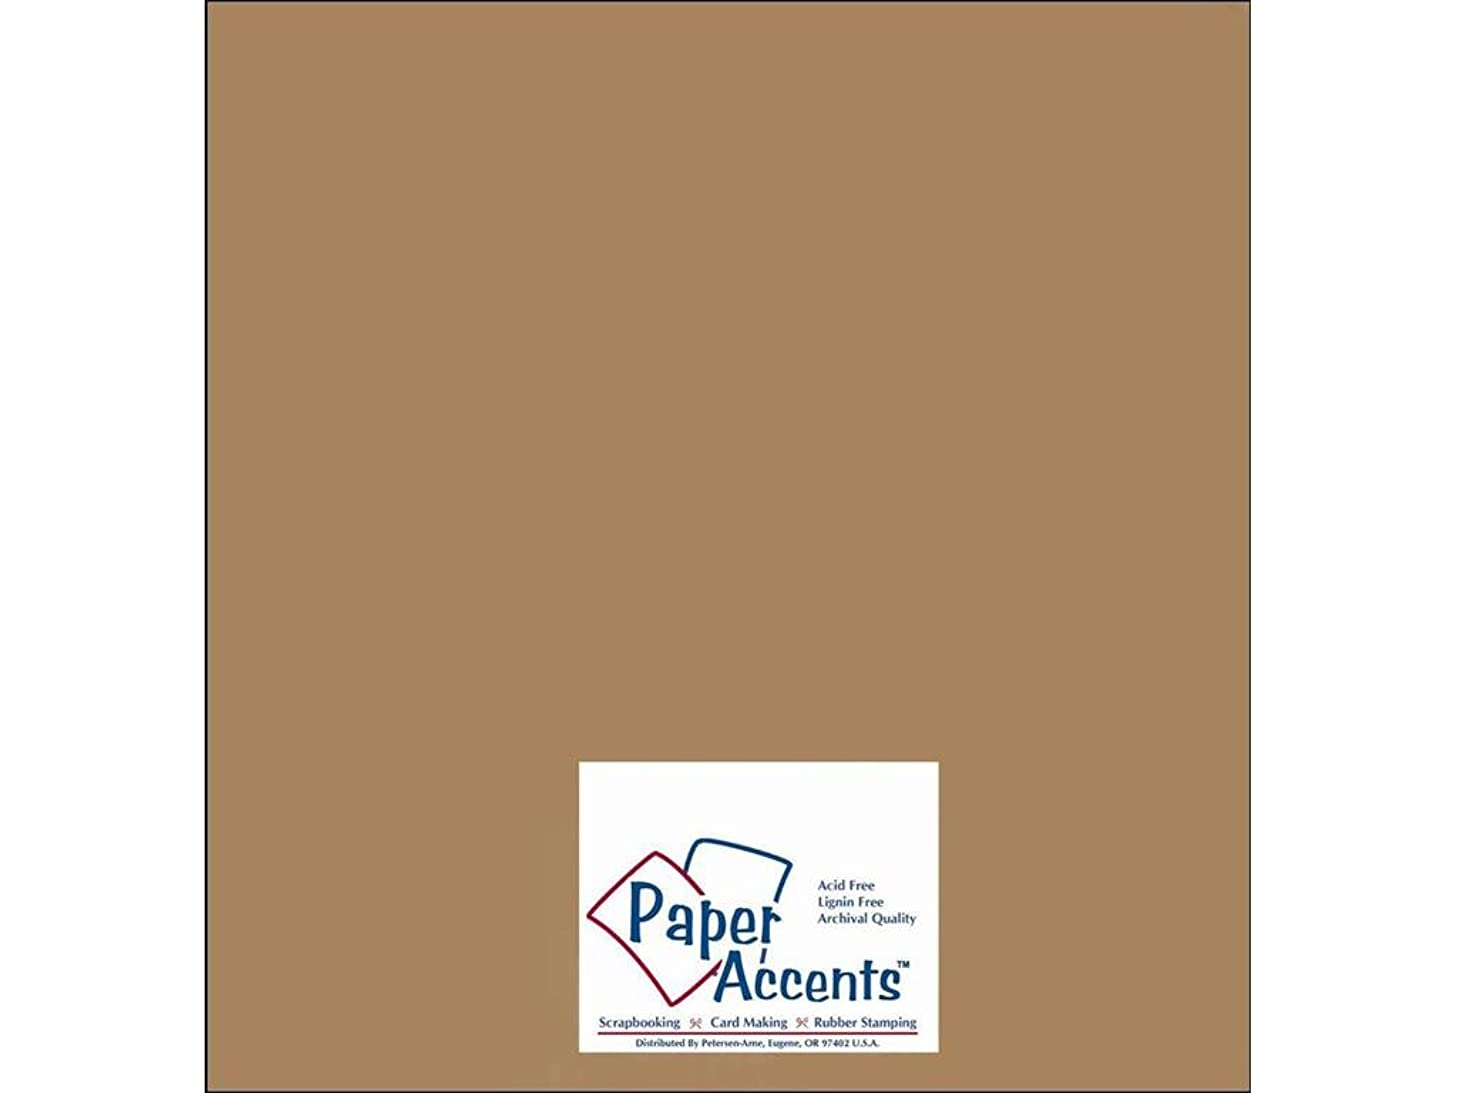 Accent Design Paper Accents ADPaperRecycled12x12BrownBag Cdstk Recycled 12x12 65# Brown Bag